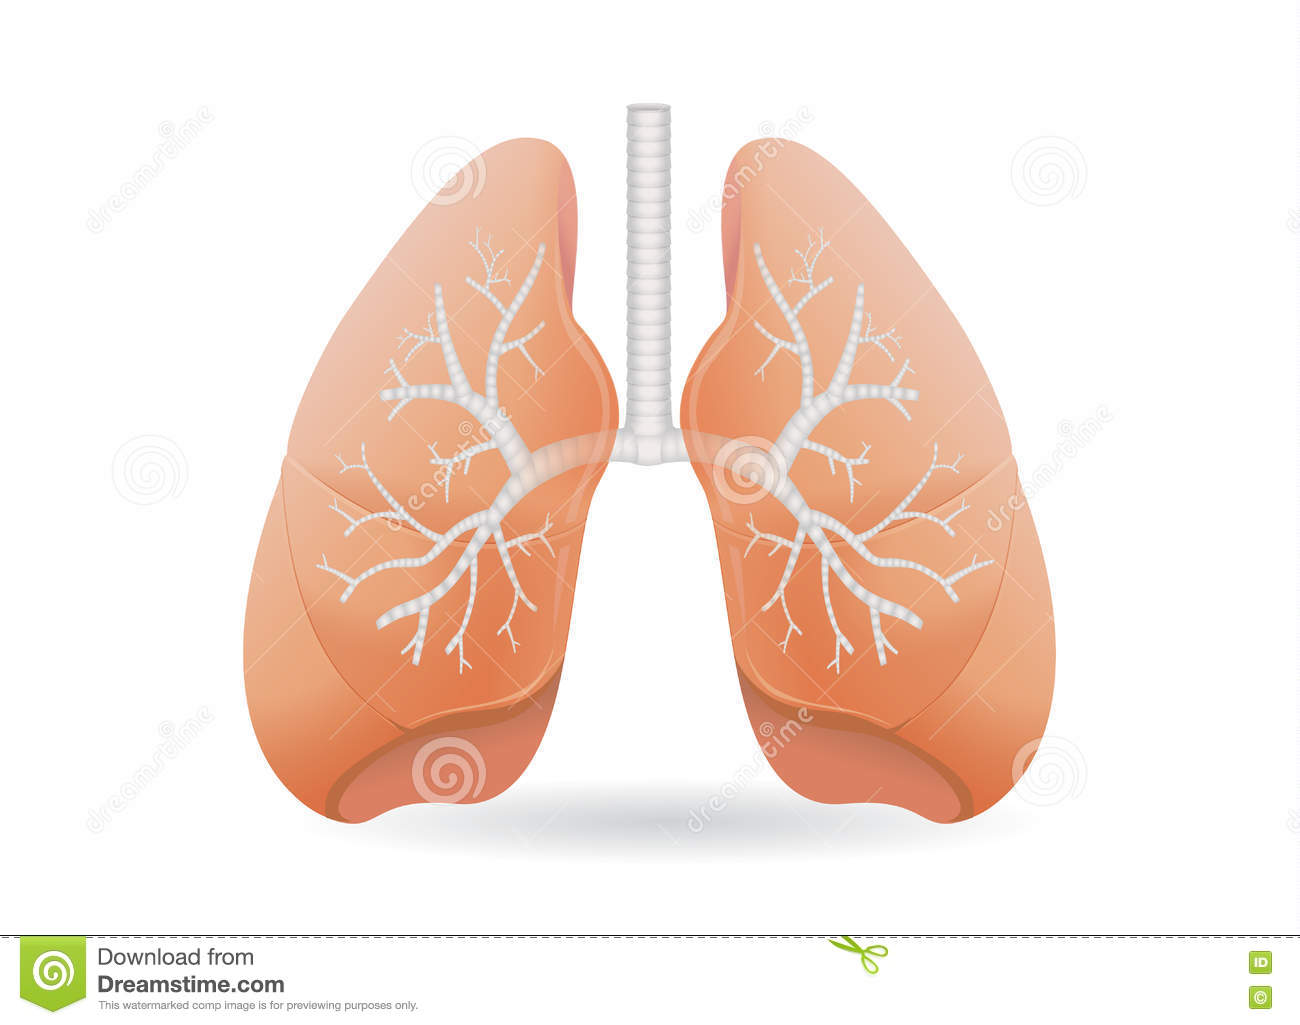 lung diagram drawing ml triton radio wiring human vector. stock image of abdomen, object - 71515821